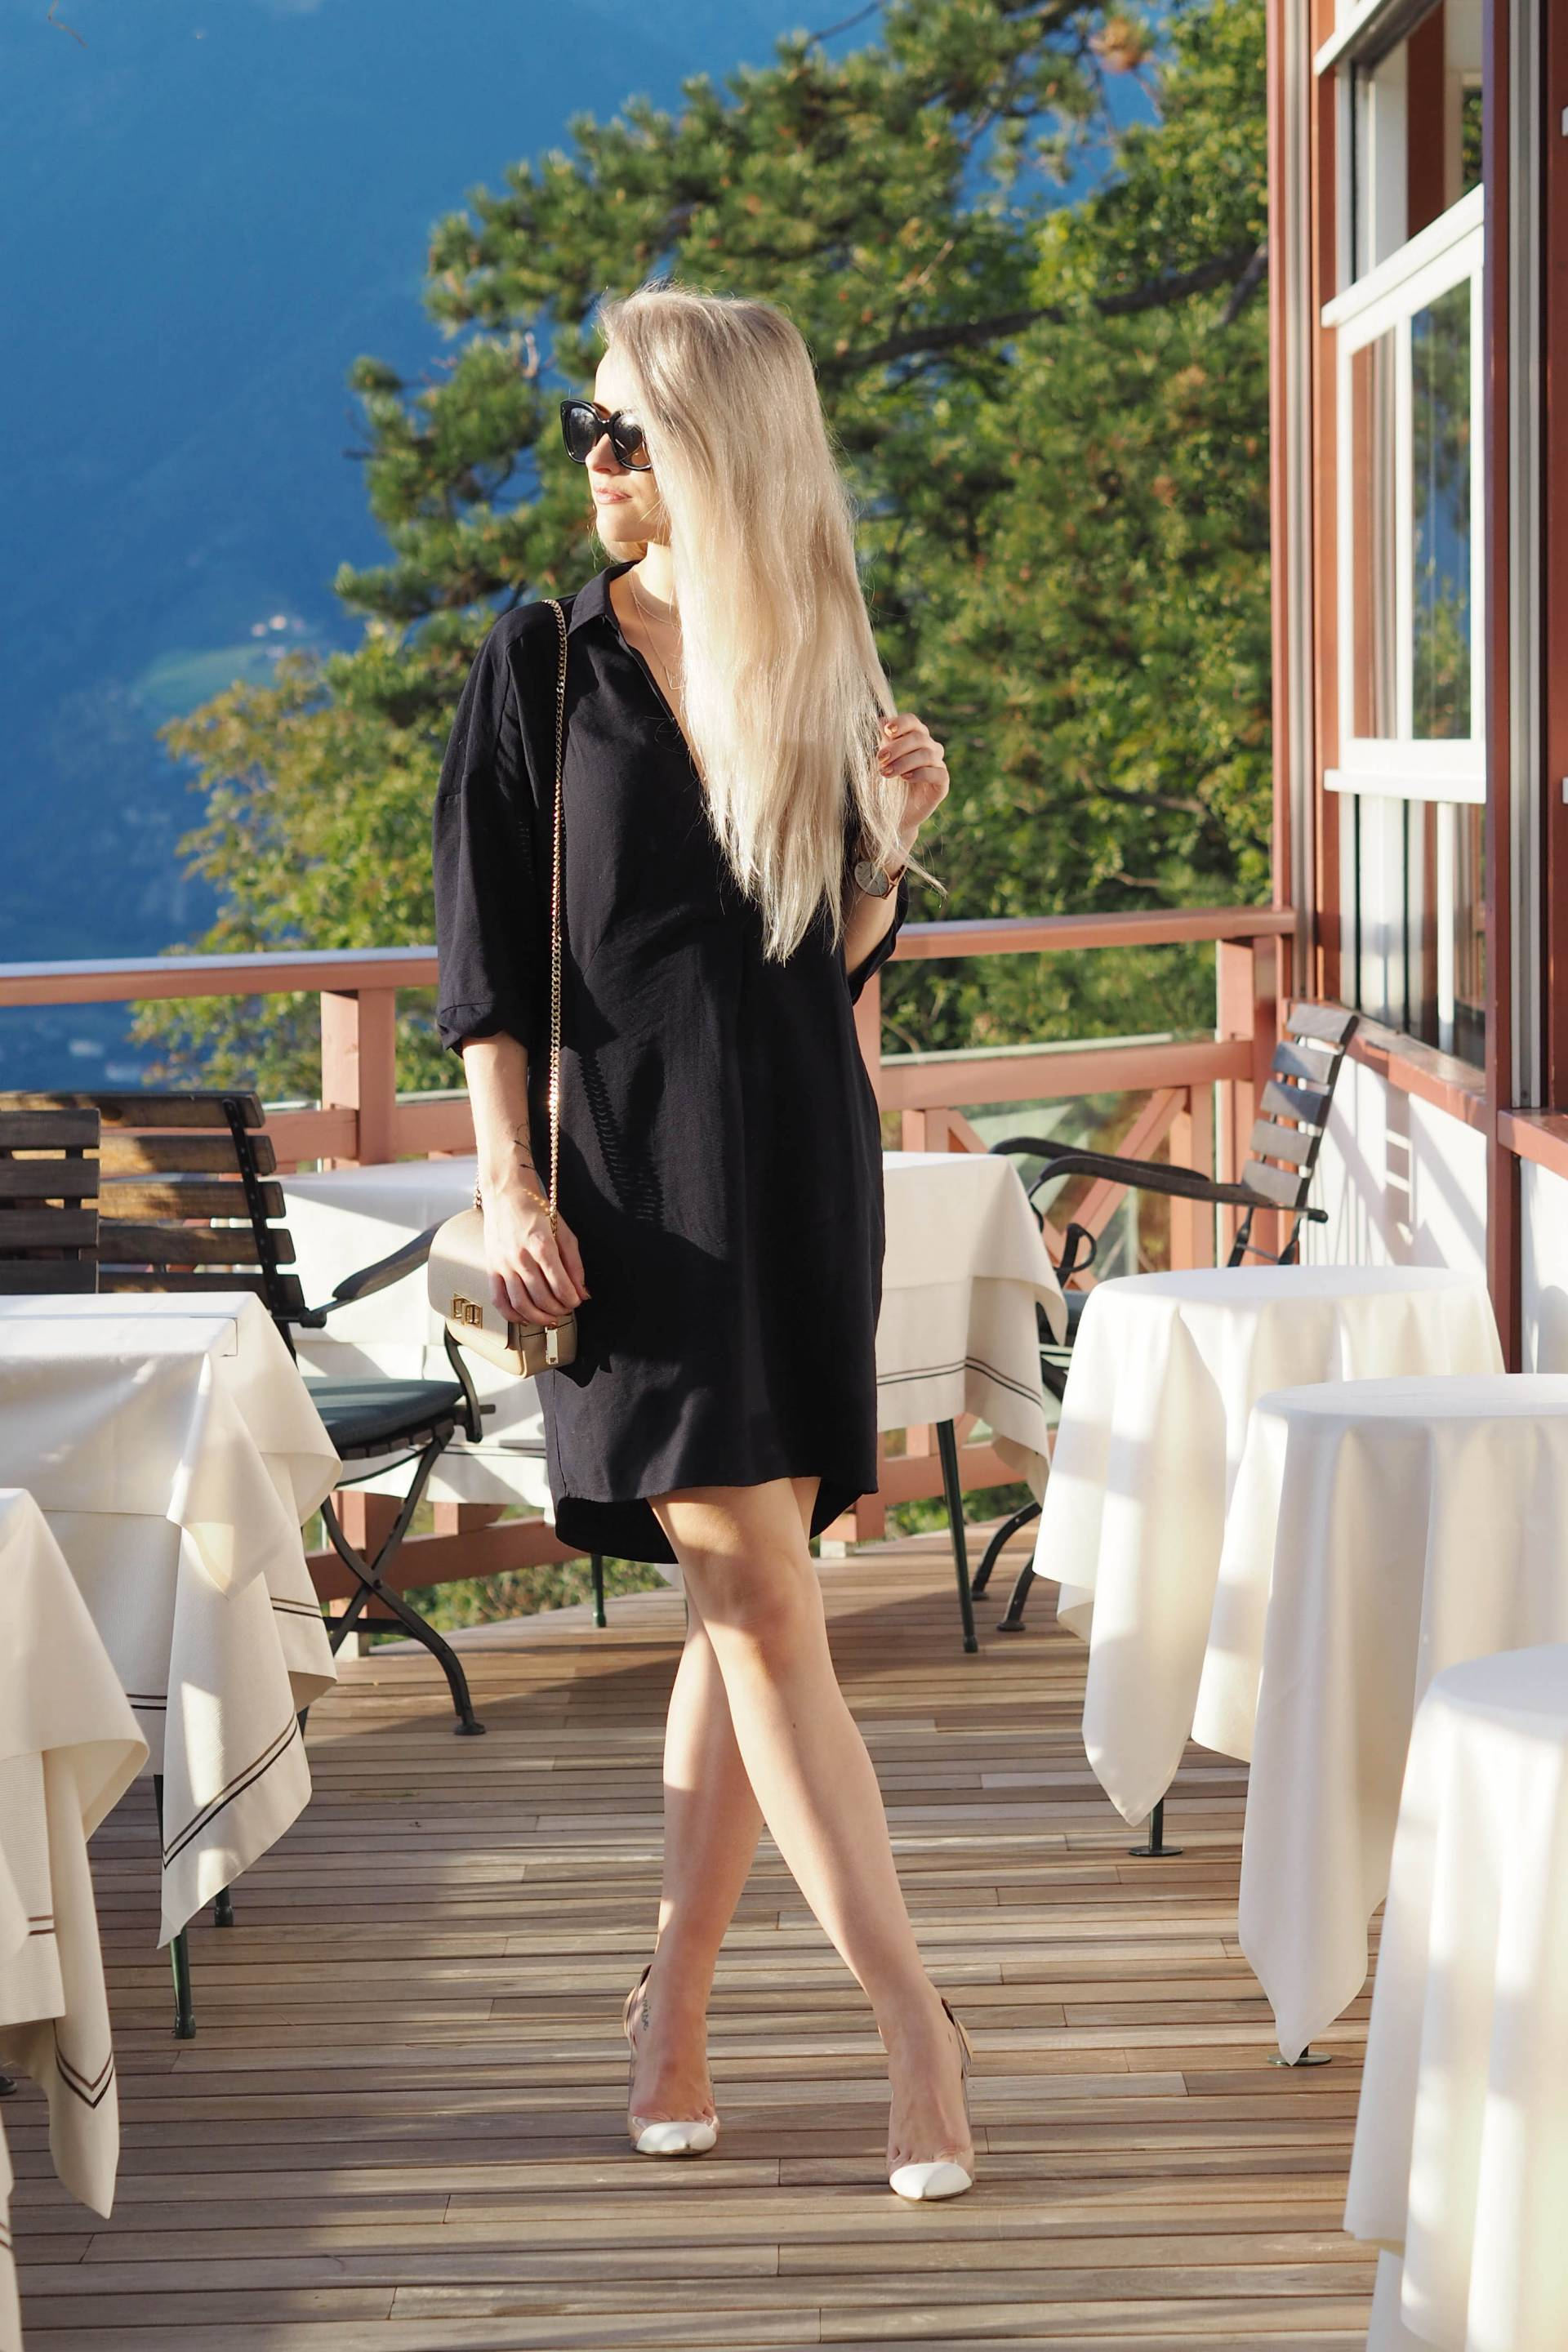 whistles sack dress with gianvito rossi courts and henri bendel clutch and celine new audrey sunglasses